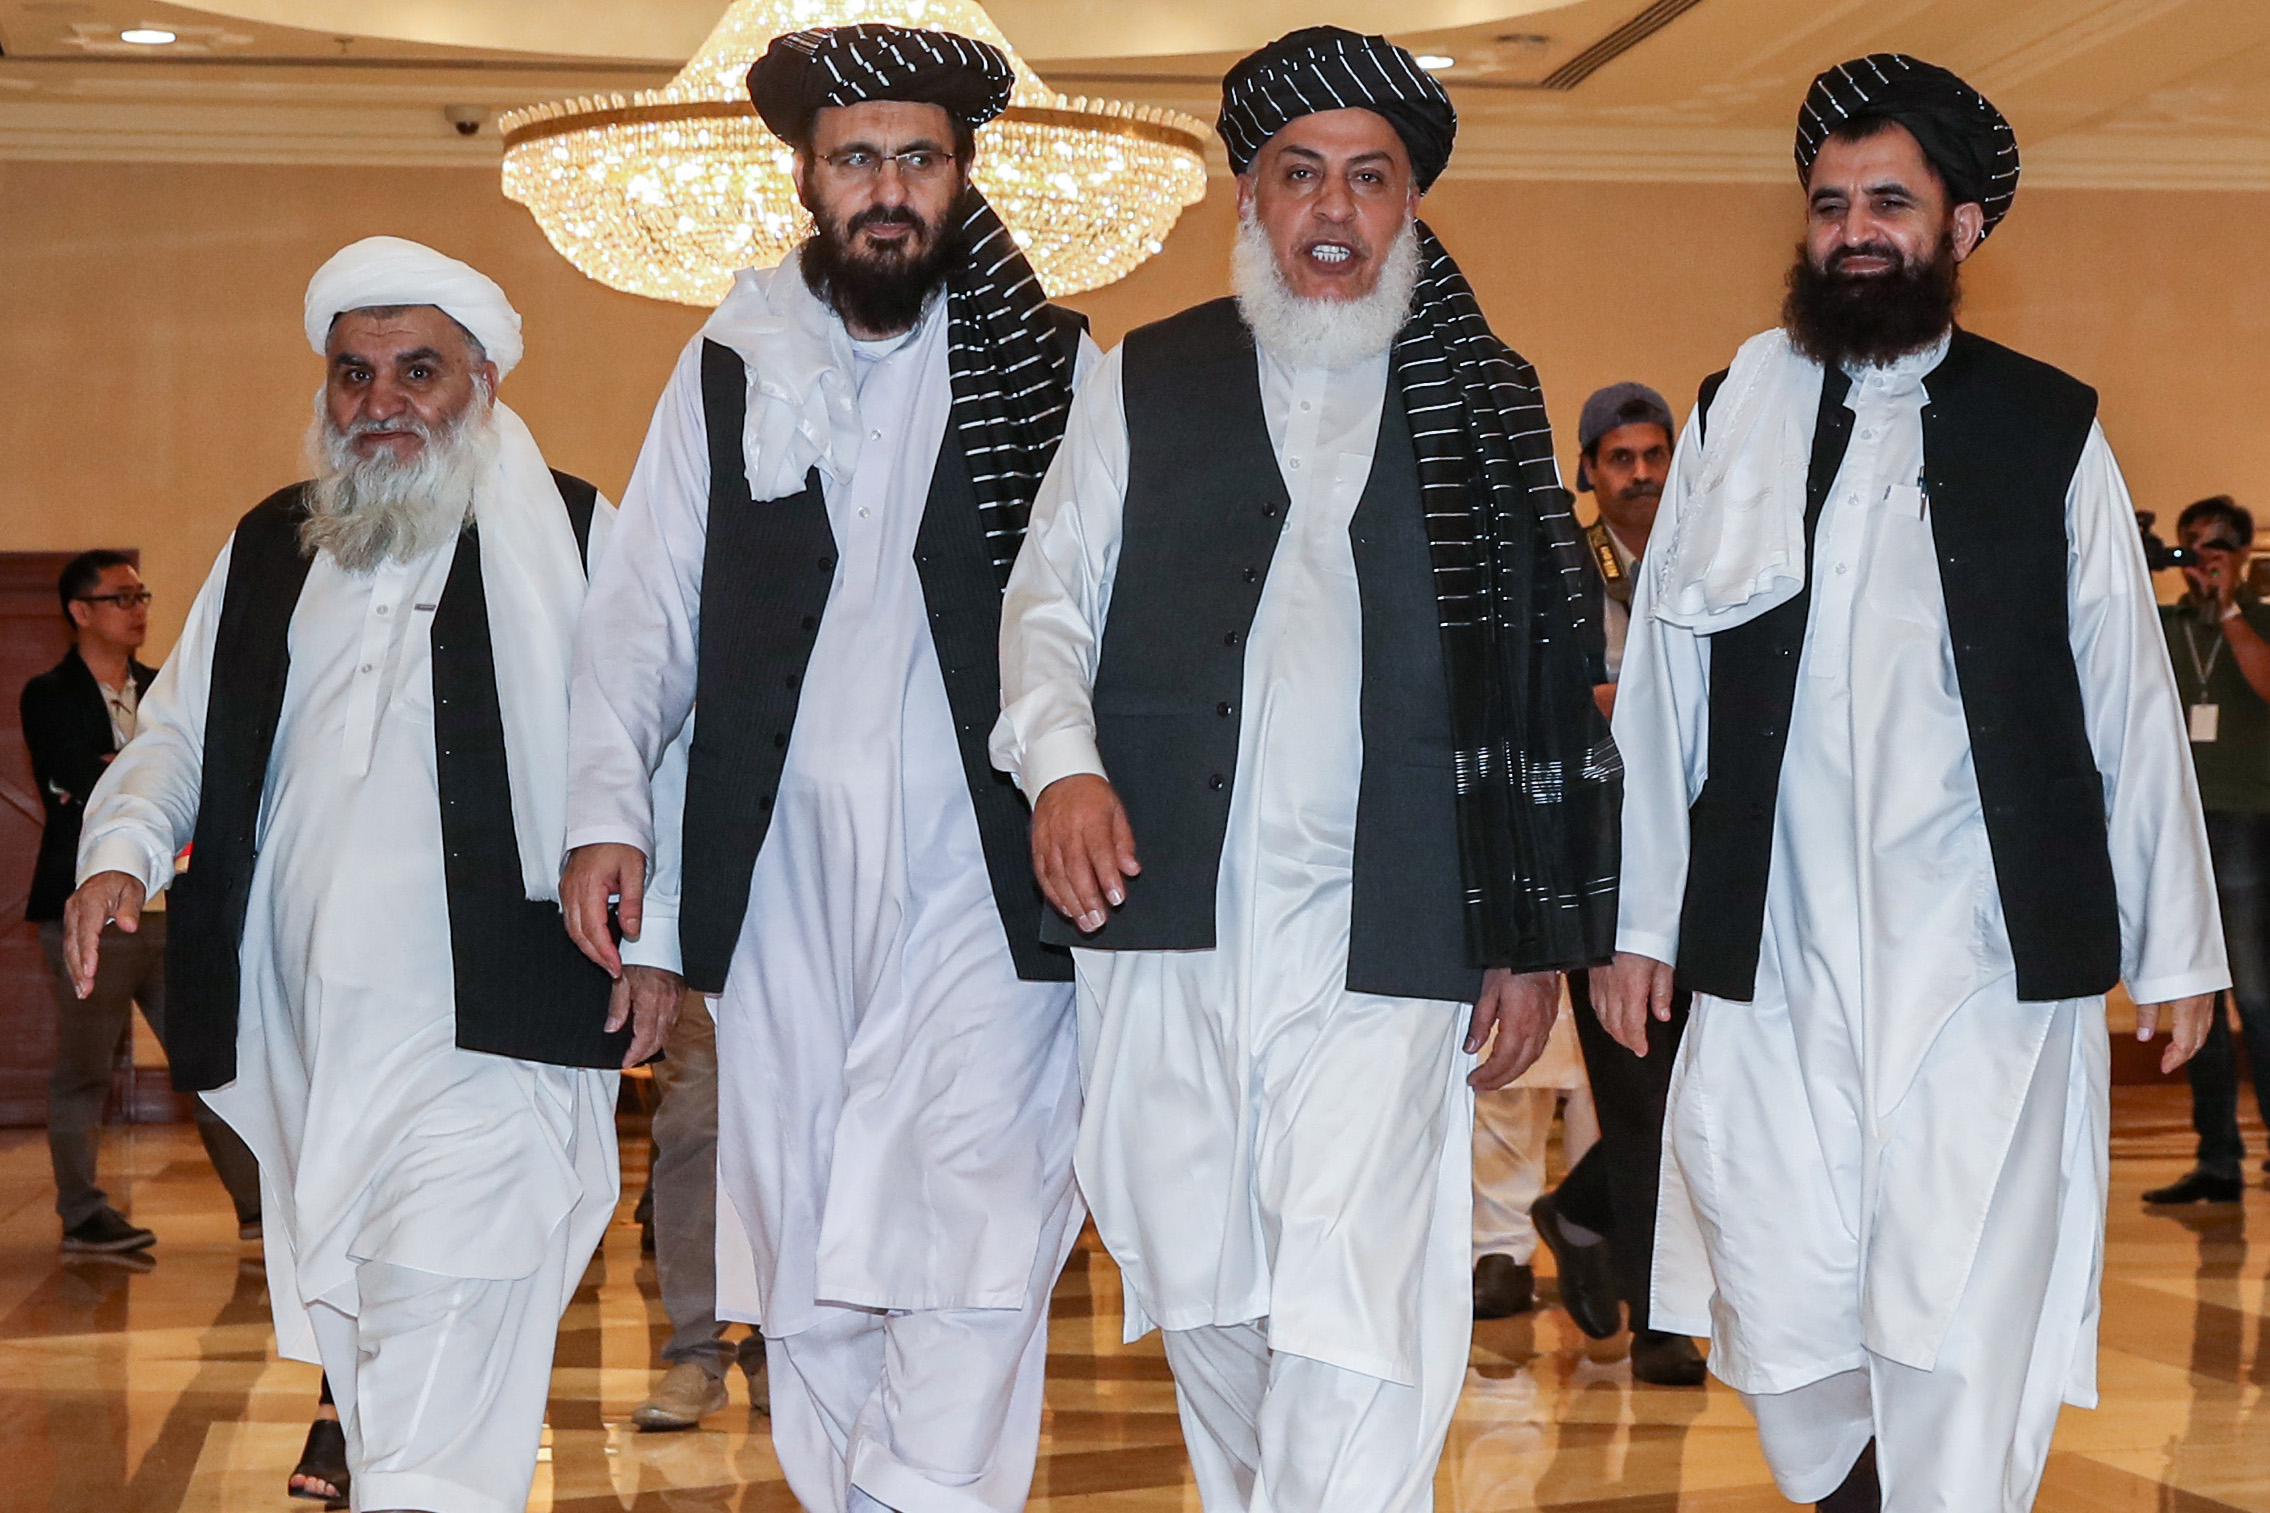 Mohammad Nabi Omari (C-L), a Taliban member formerly held by the US at Guantanamo Bay and reportedly released in 2014 in a prisoner exchange, Taliban negotiator Abbas Stanikzai (C-R), and former Taliban intelligence deputy Mawlawi Abdul Haq Wasiq (R) walk with another Taliban member during the second day of the Intra Afghan Dialogue talks in the Qatari capital Doha on July 8, 2019. (KARIM JAAFAR/AFP/Getty Images)